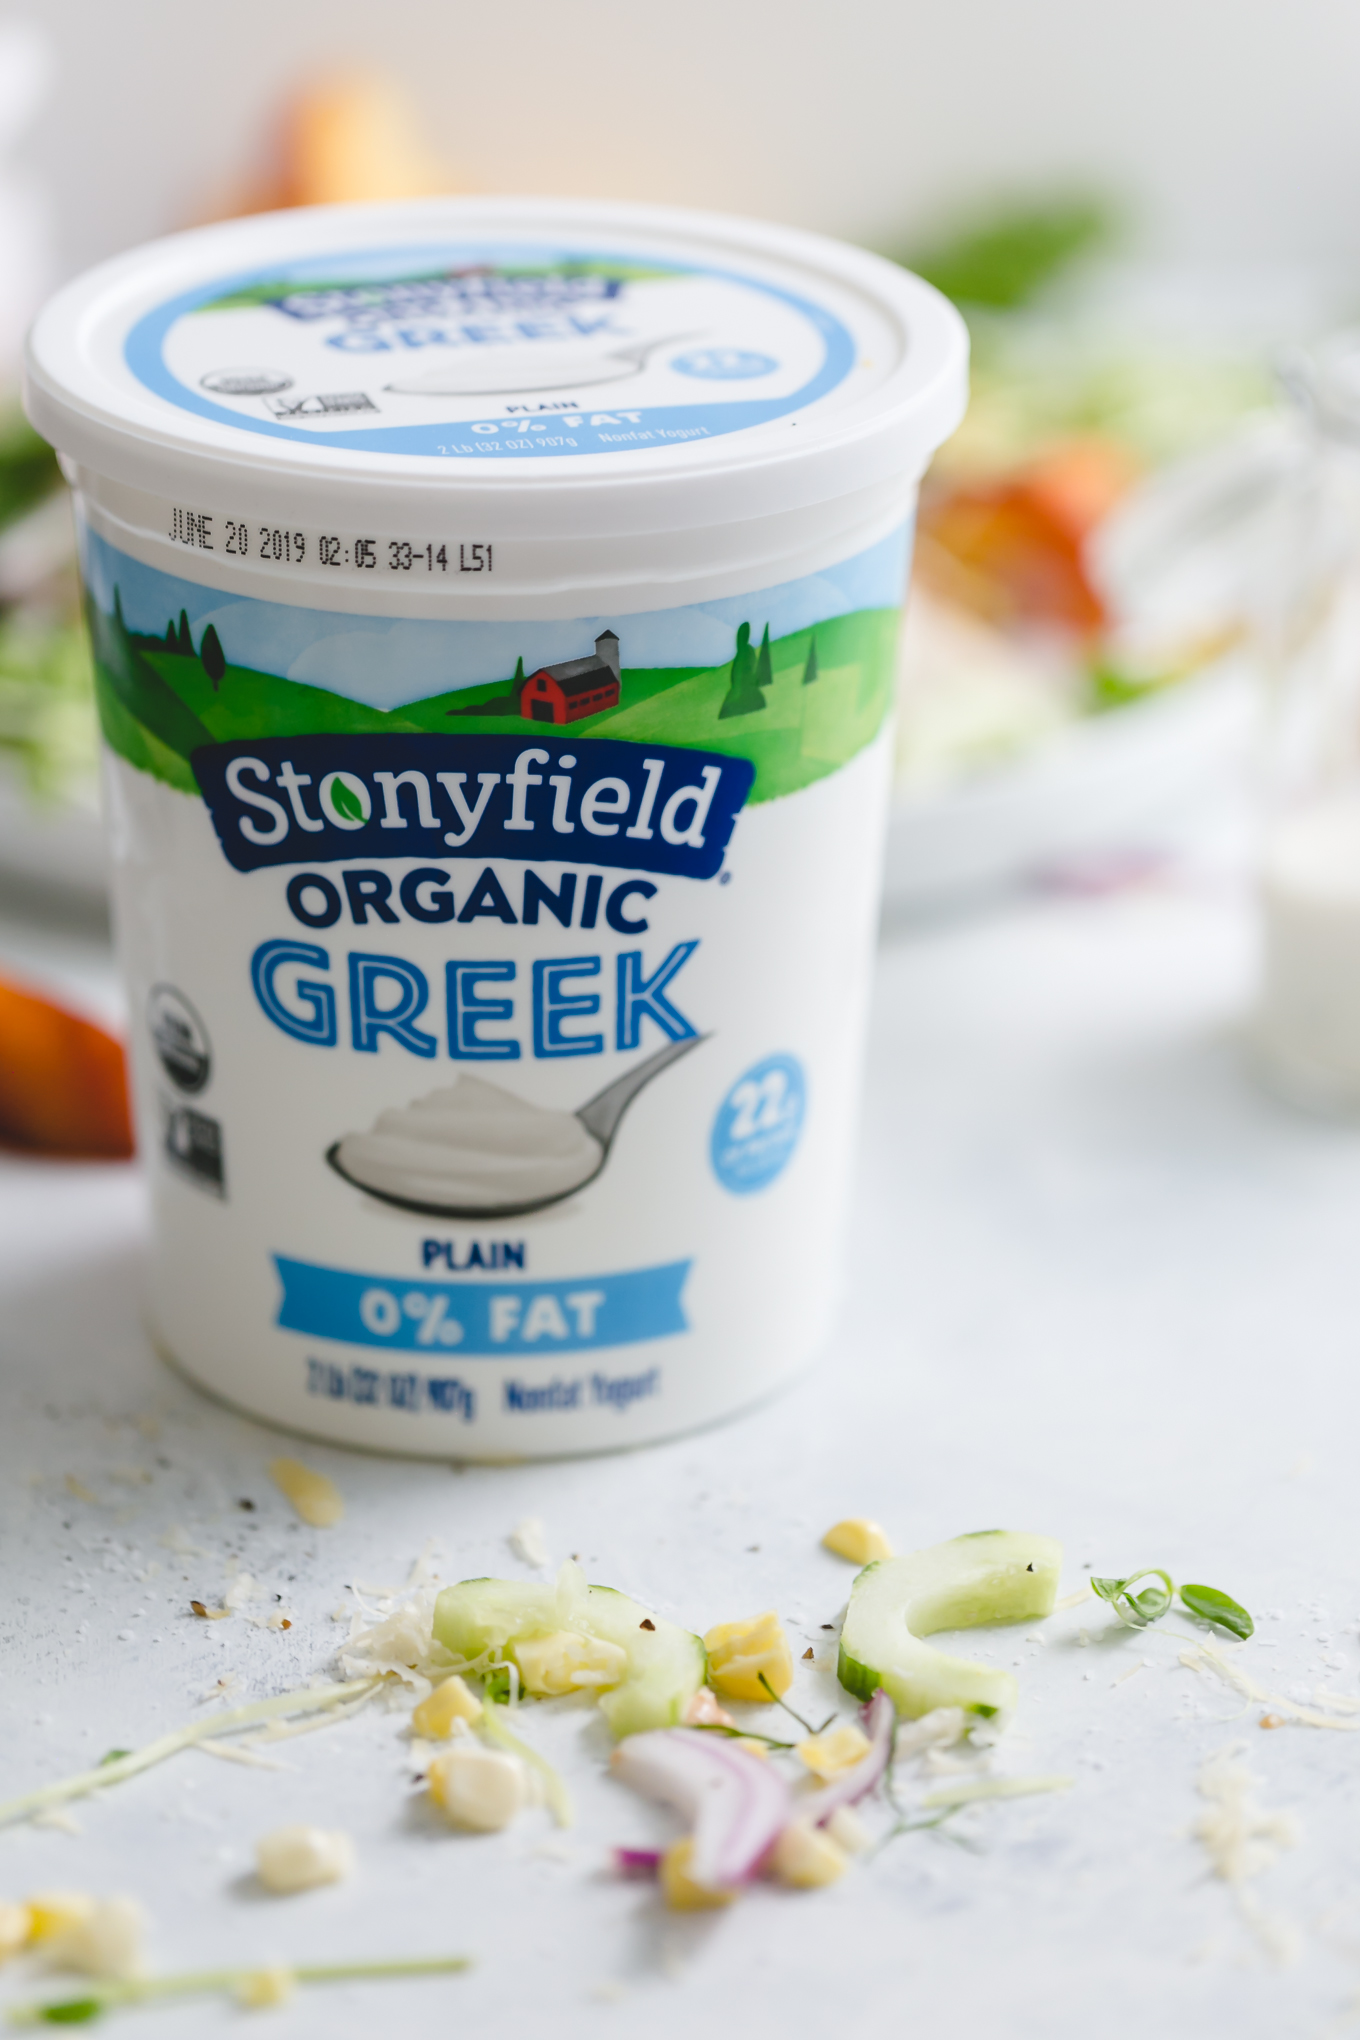 Stonyfield greek nonfat yogurt